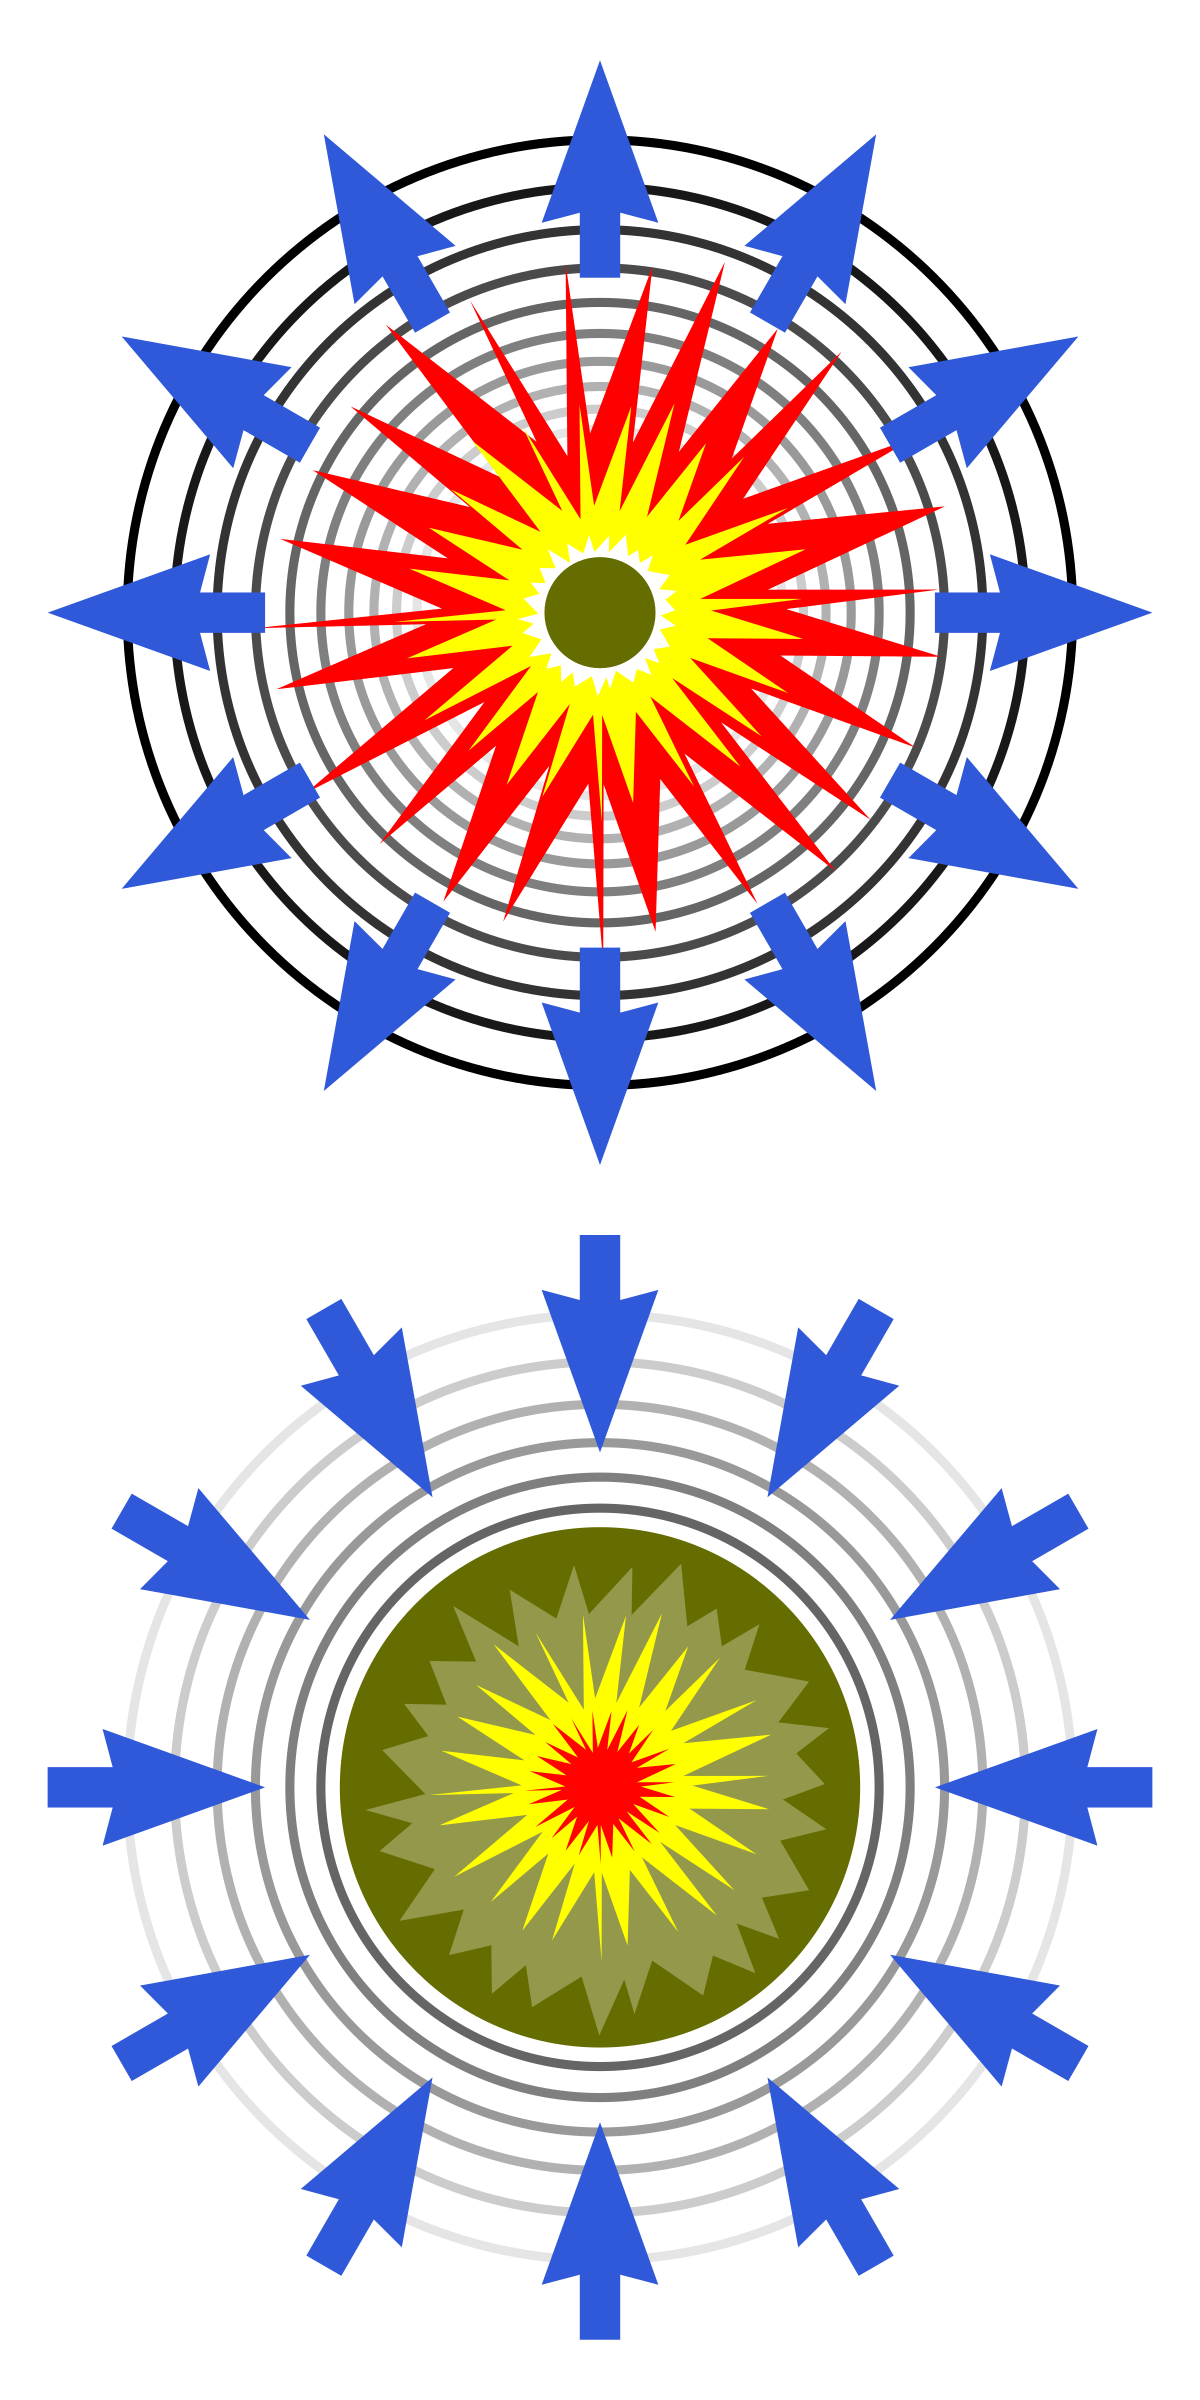 Implosion mechanical process wikipedia. Explosion clipart gas bomb